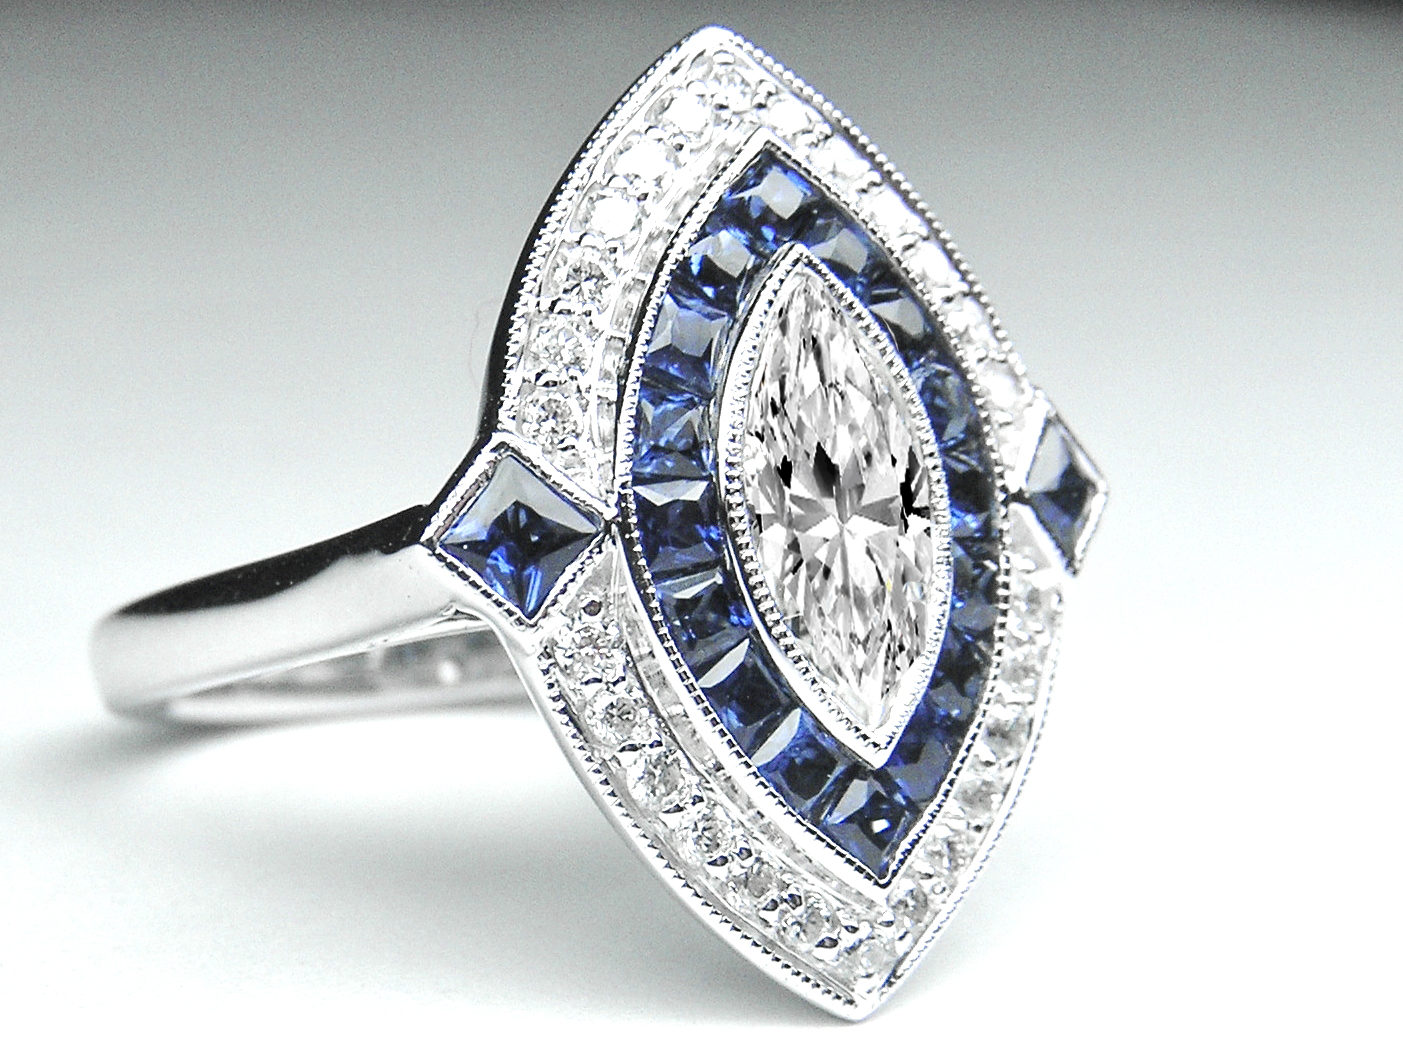 Marquise Diamond Art Deco Engagement Ring with Blue Sapphire & Diamond Halo in 14K White gold